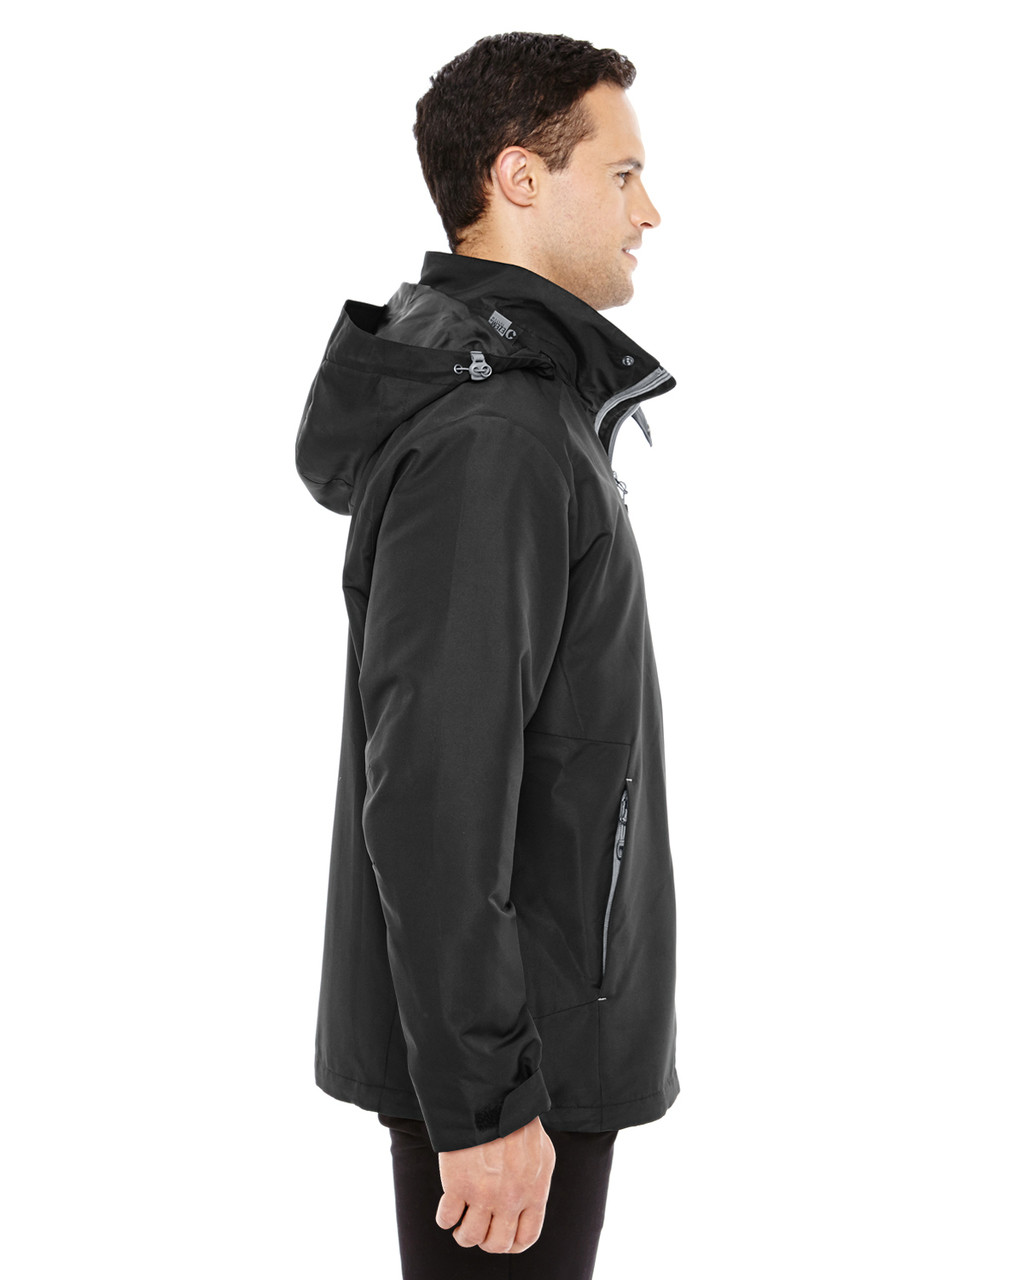 Black/Graphite - side 88226 North End Men's Insight Interactive Shell Jacket | Blankclothing.ca